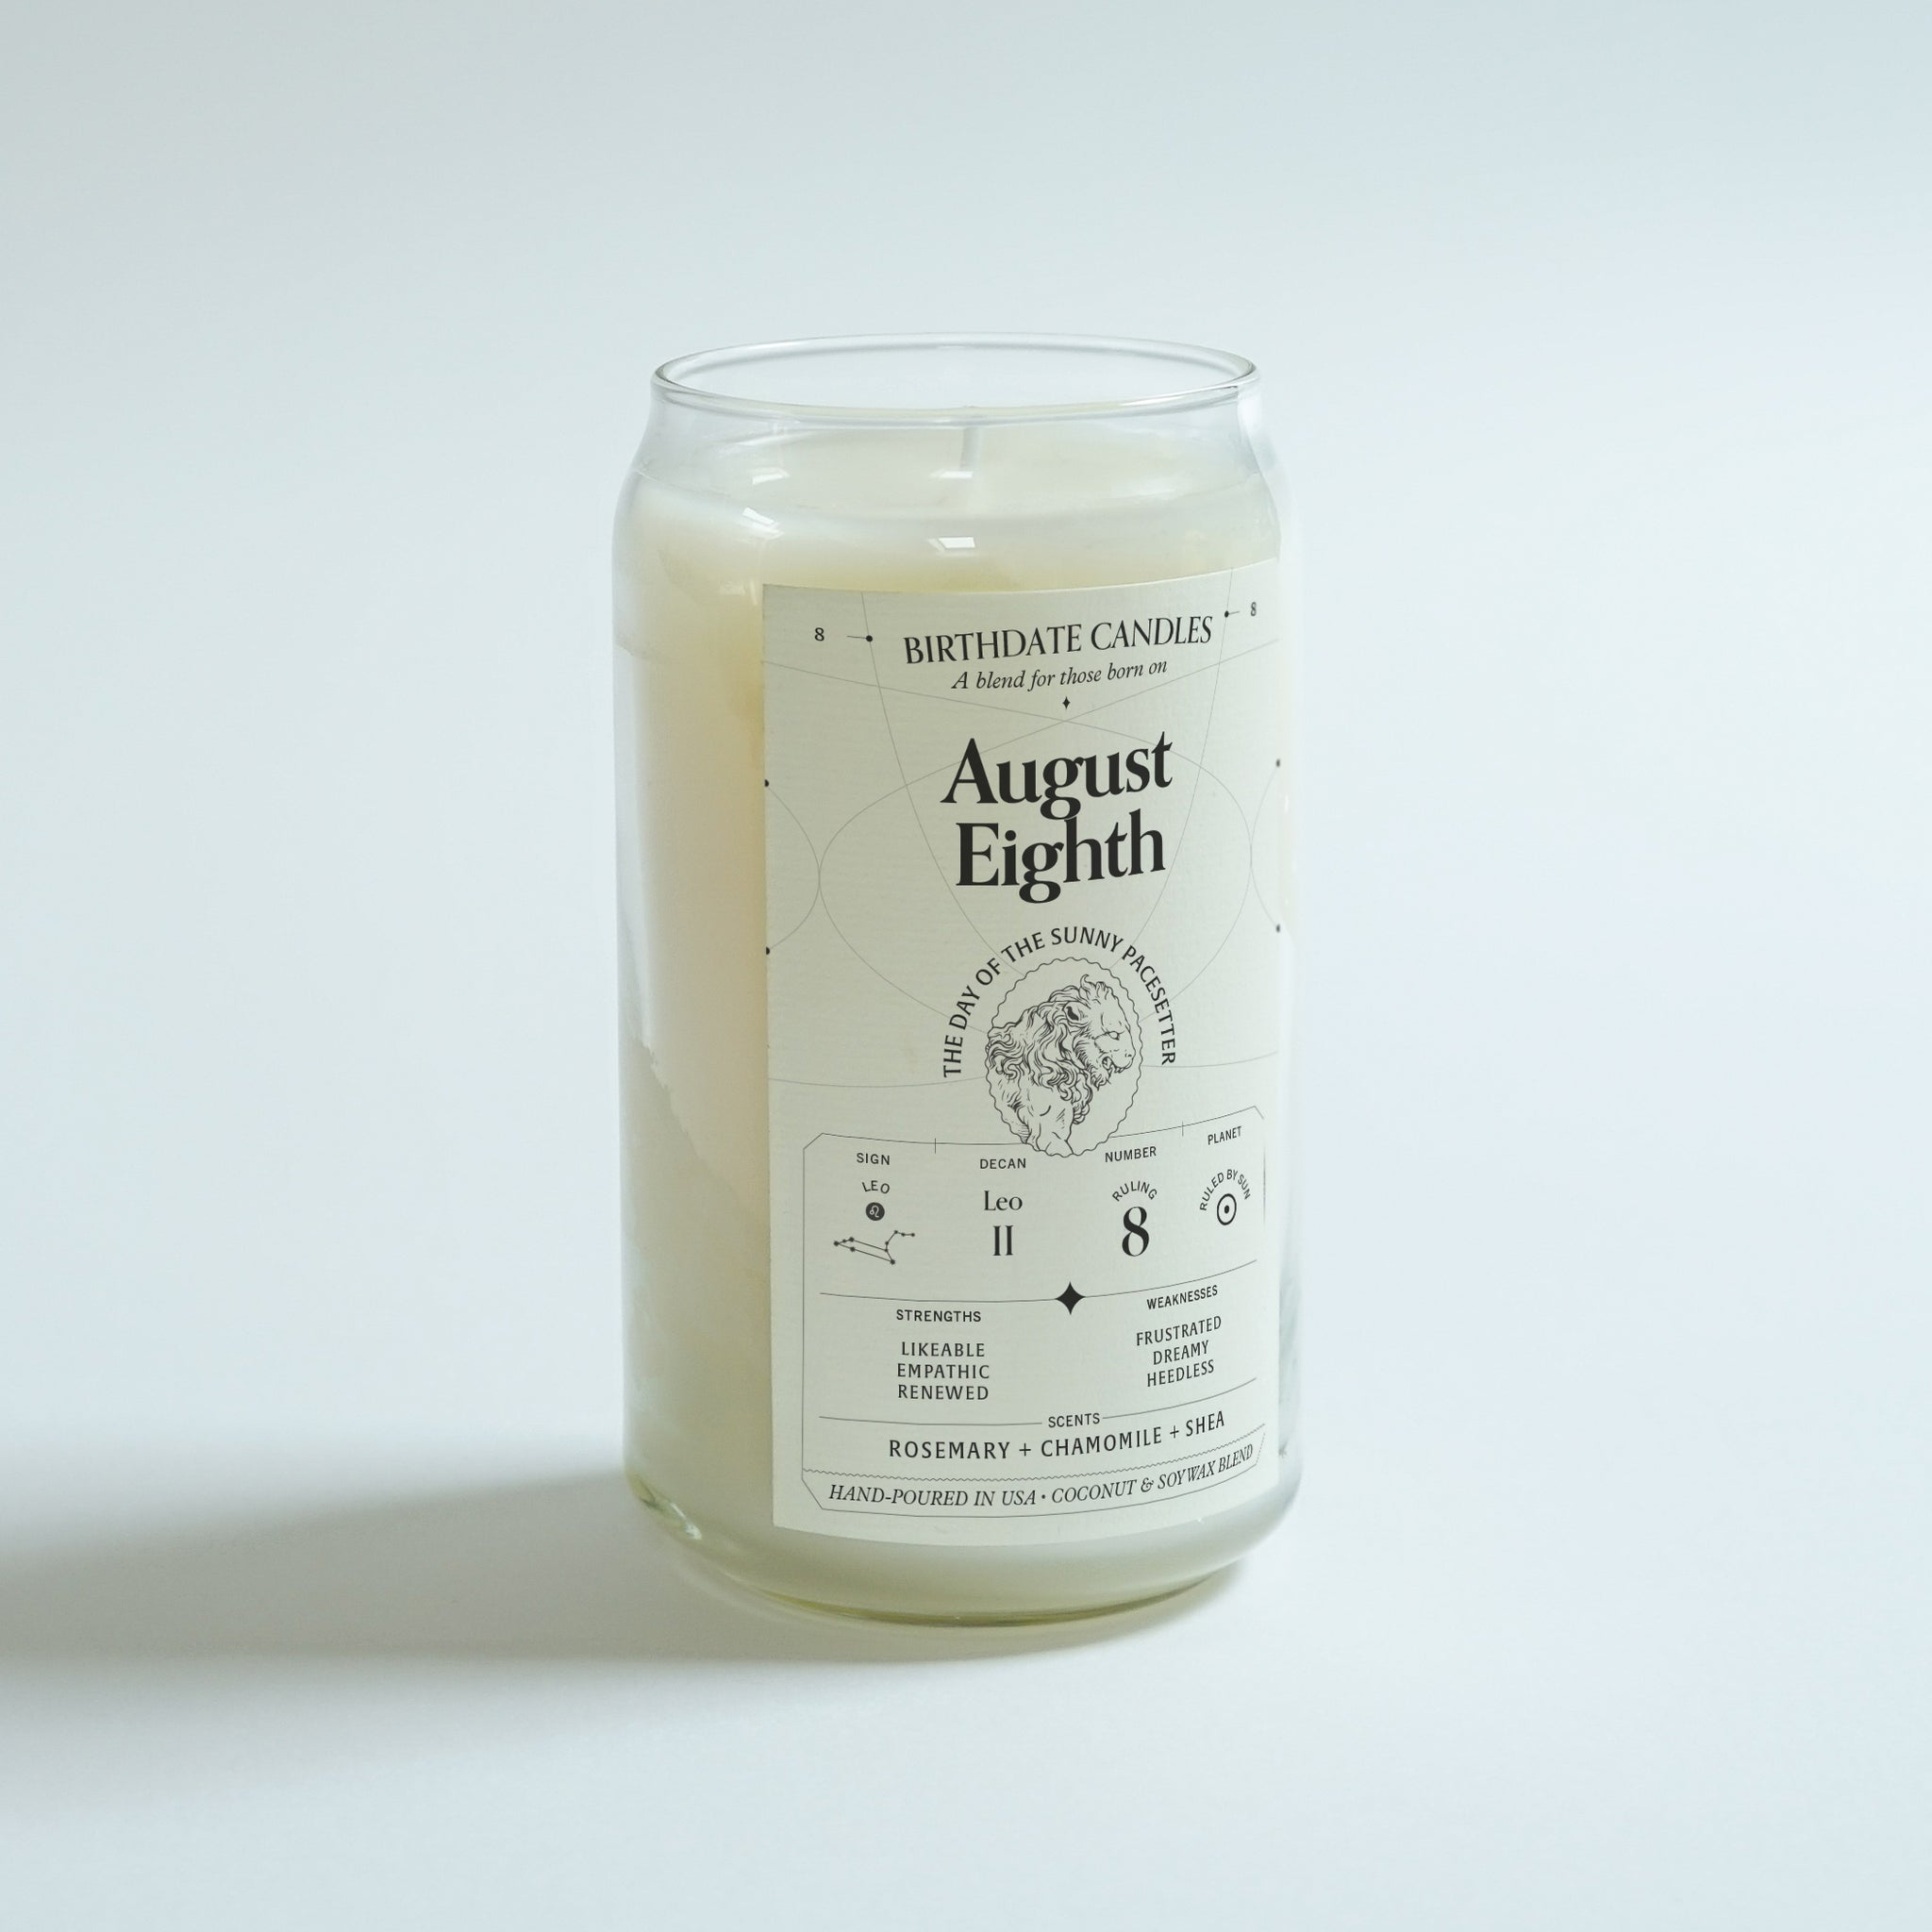 The August Eighth Birthday Candle